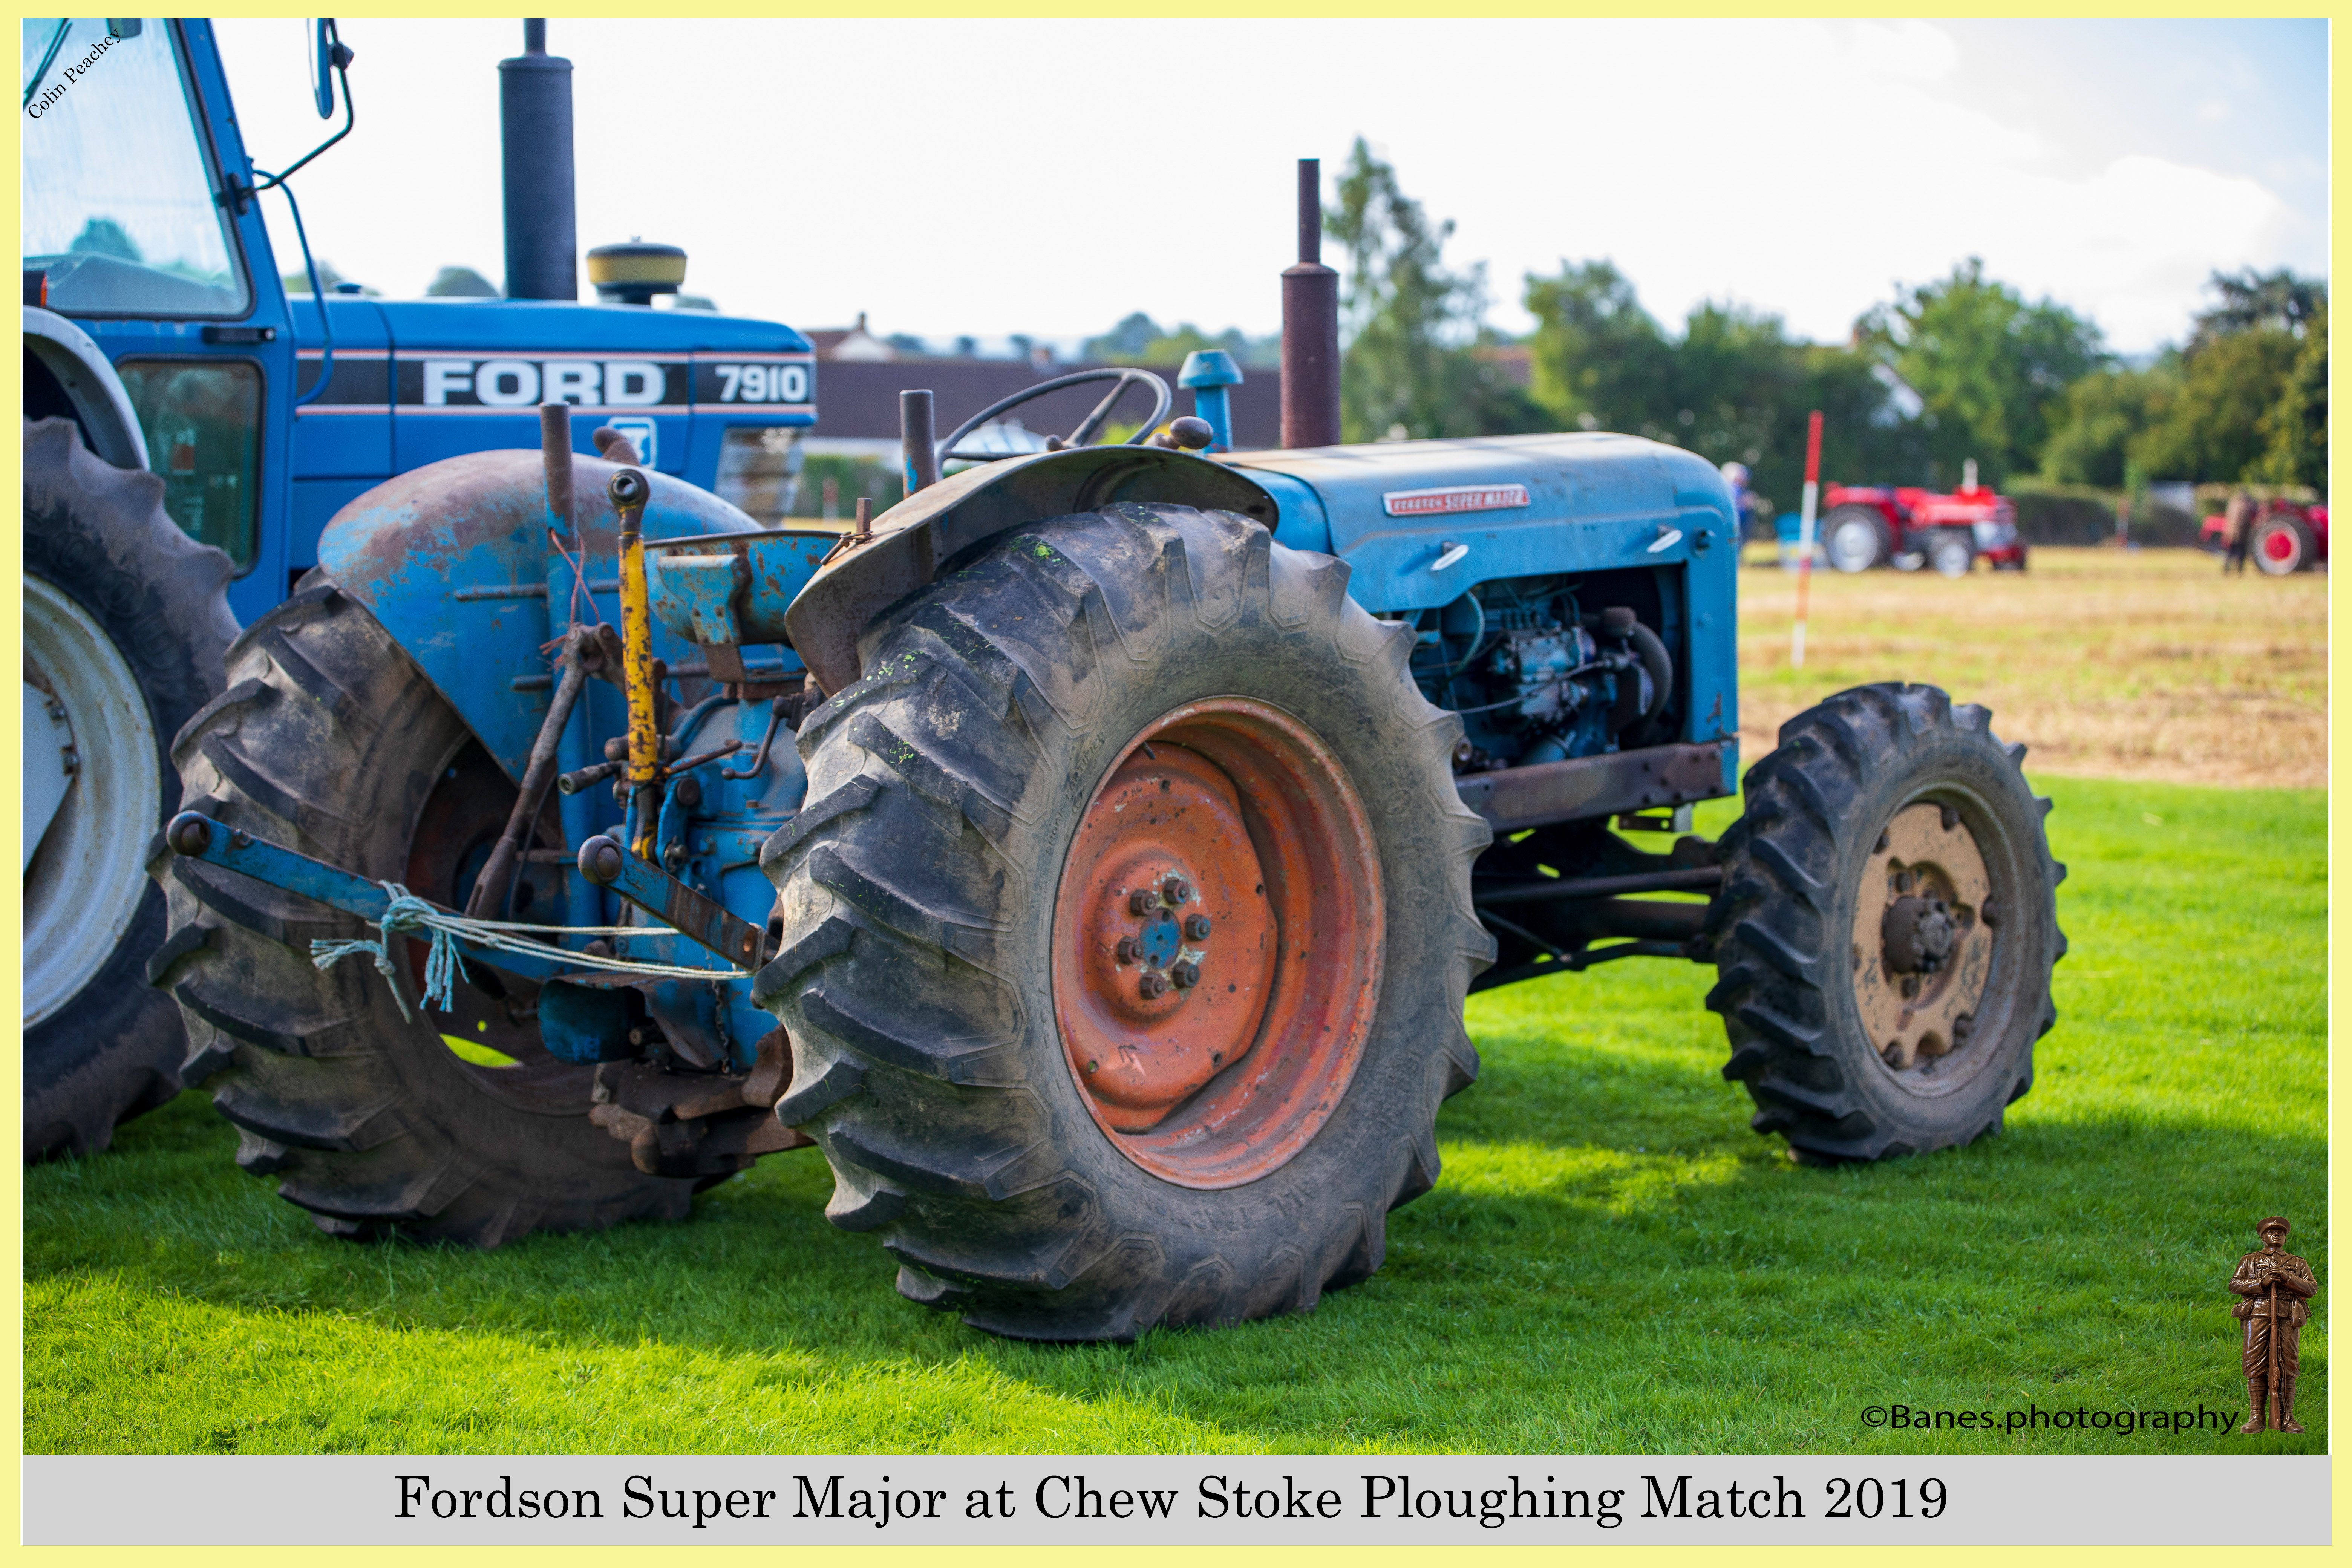 Fordson Super Major at Chew Stoke 2019